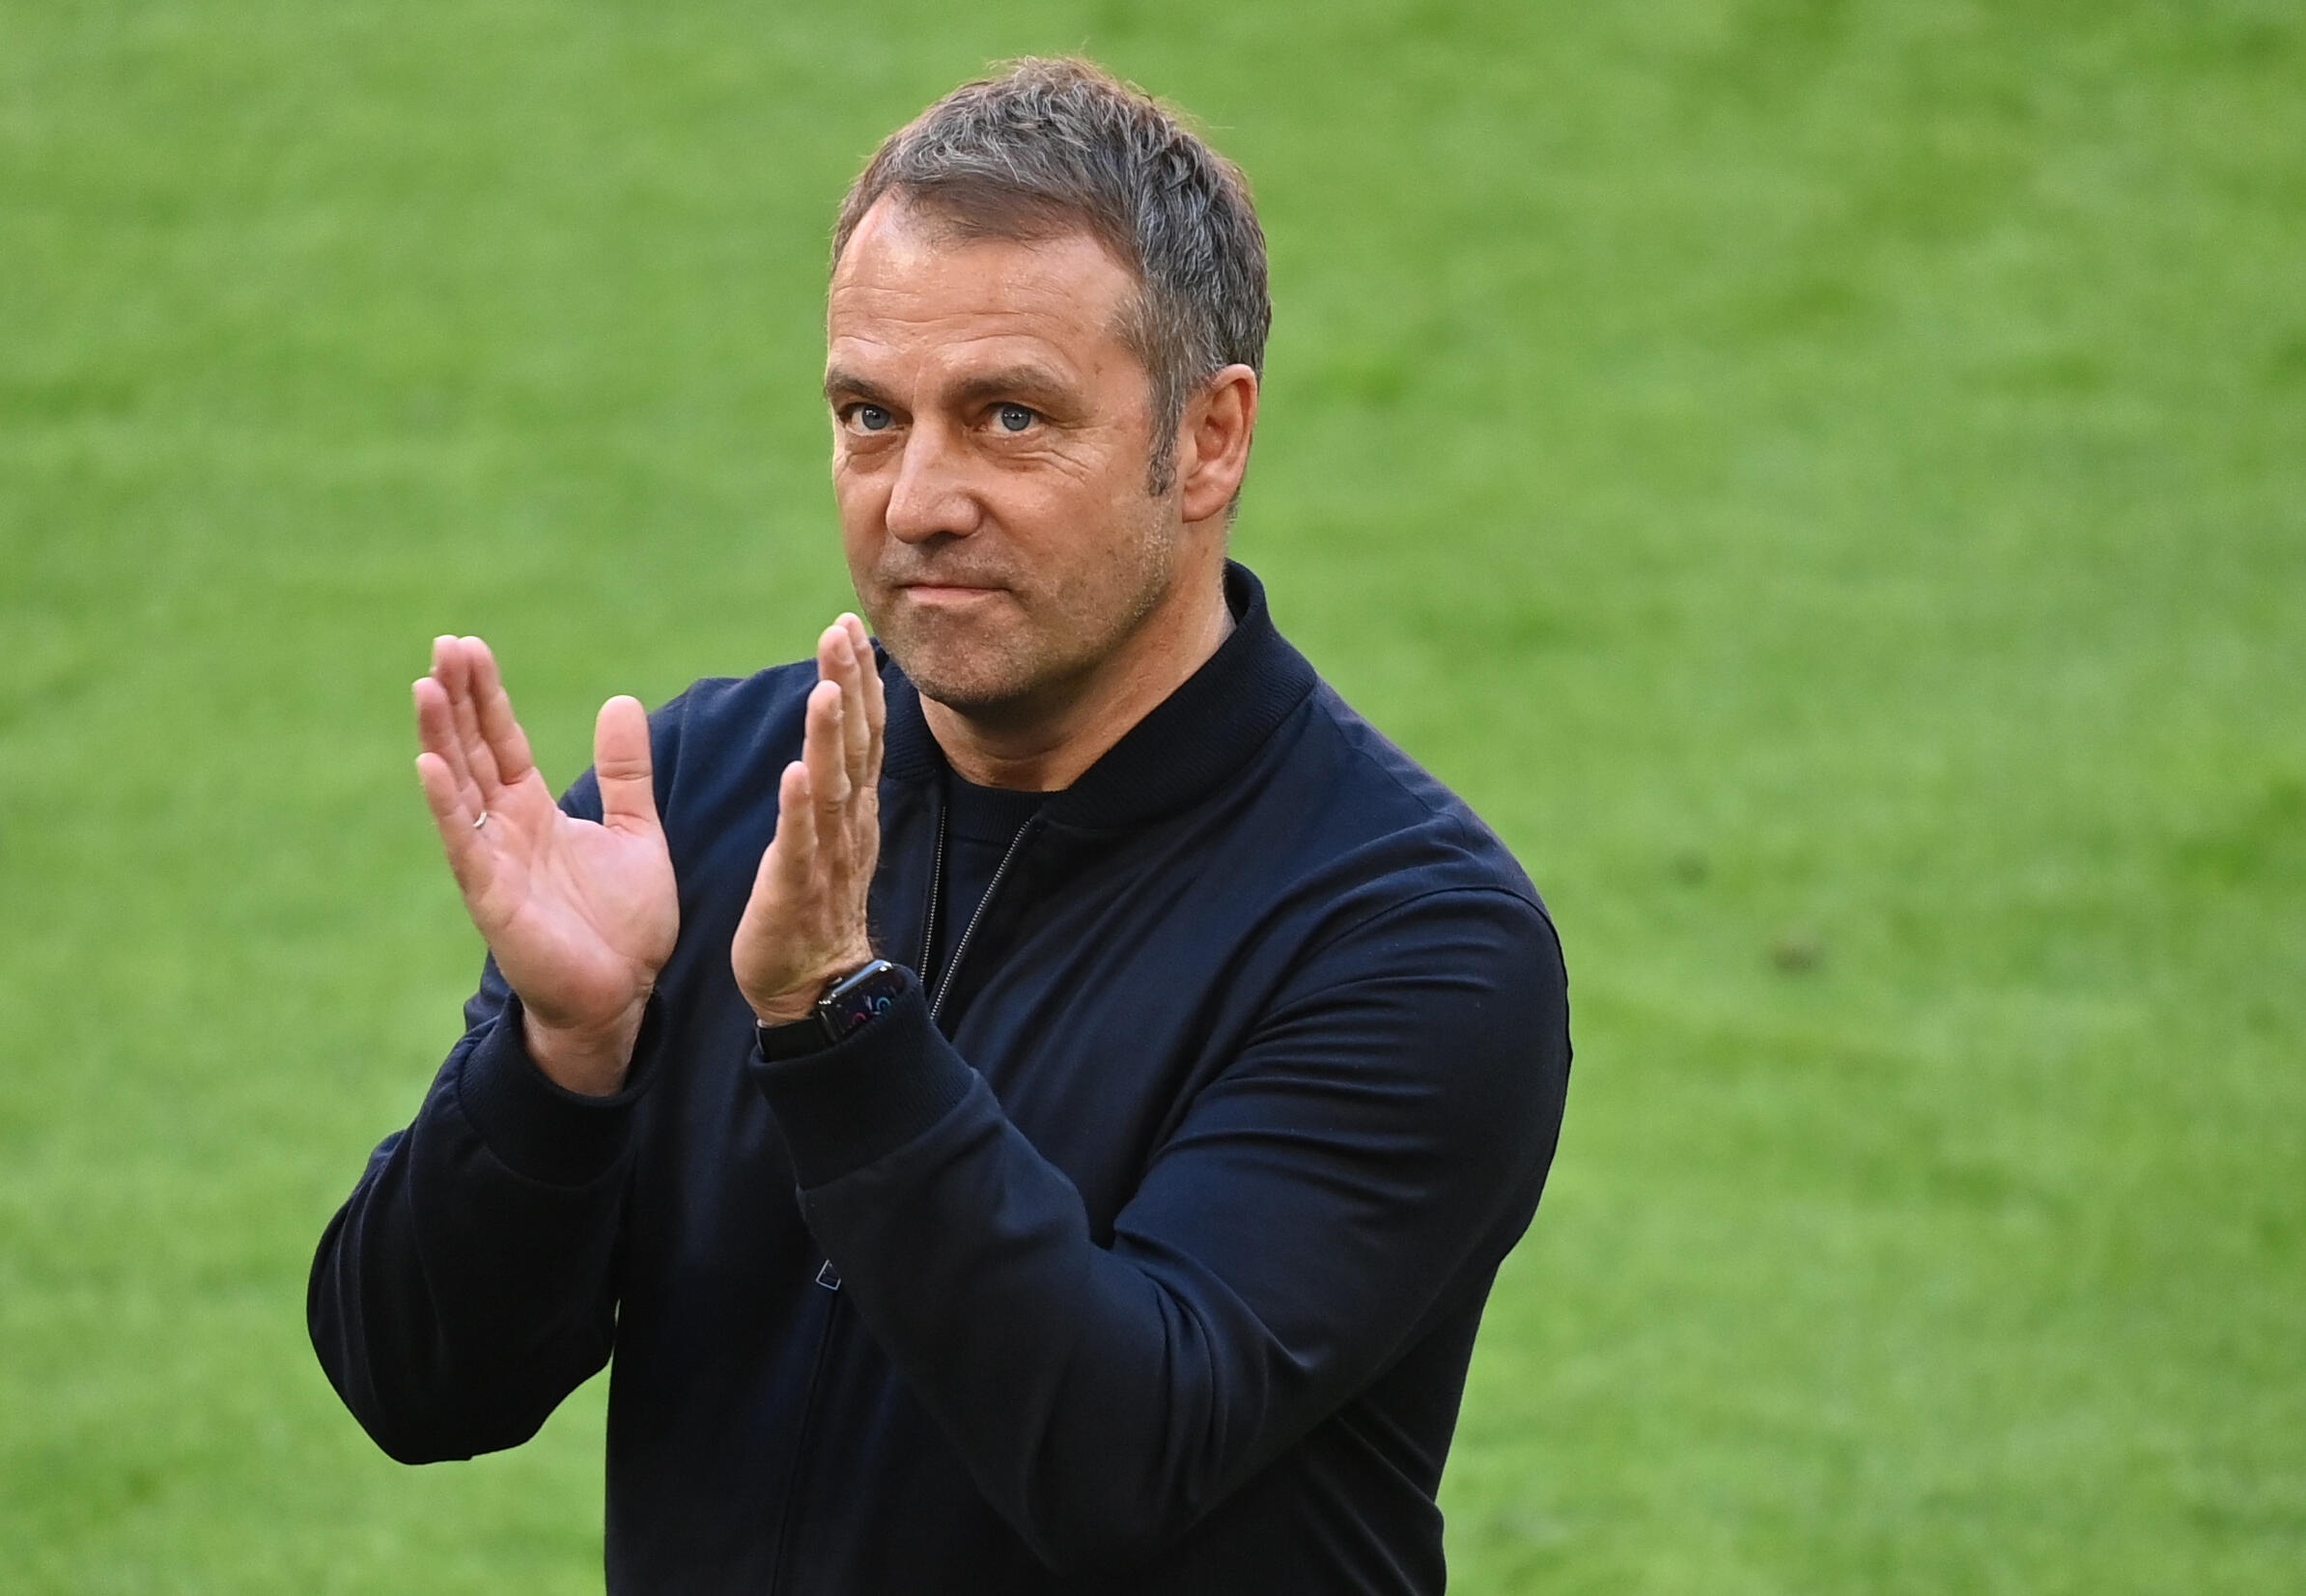 Hansi Flick will take over as coach of Germany's national football team after the 2021 European championships.